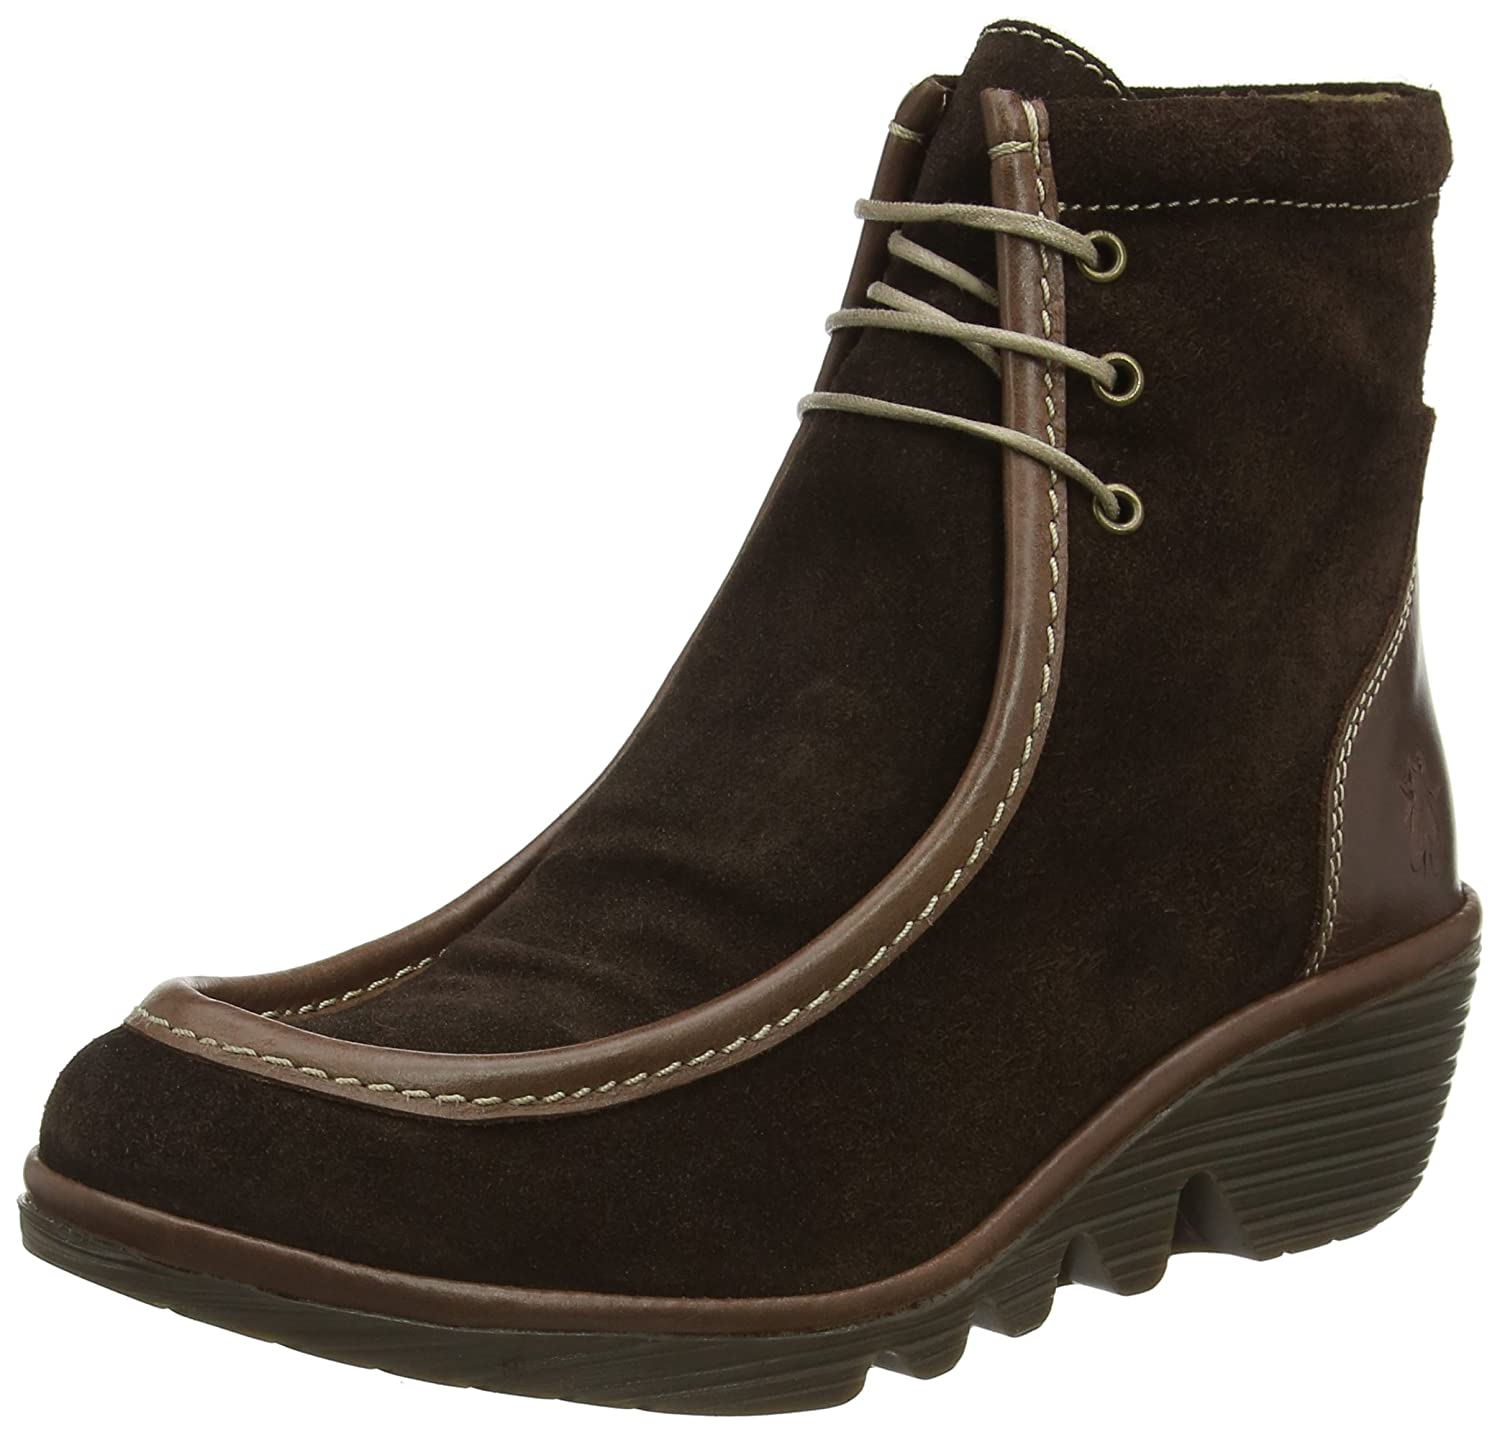 Fly London Pail763fly, Botas para Mujer39 EU|Marrón (Expresso/Dk. Brown)